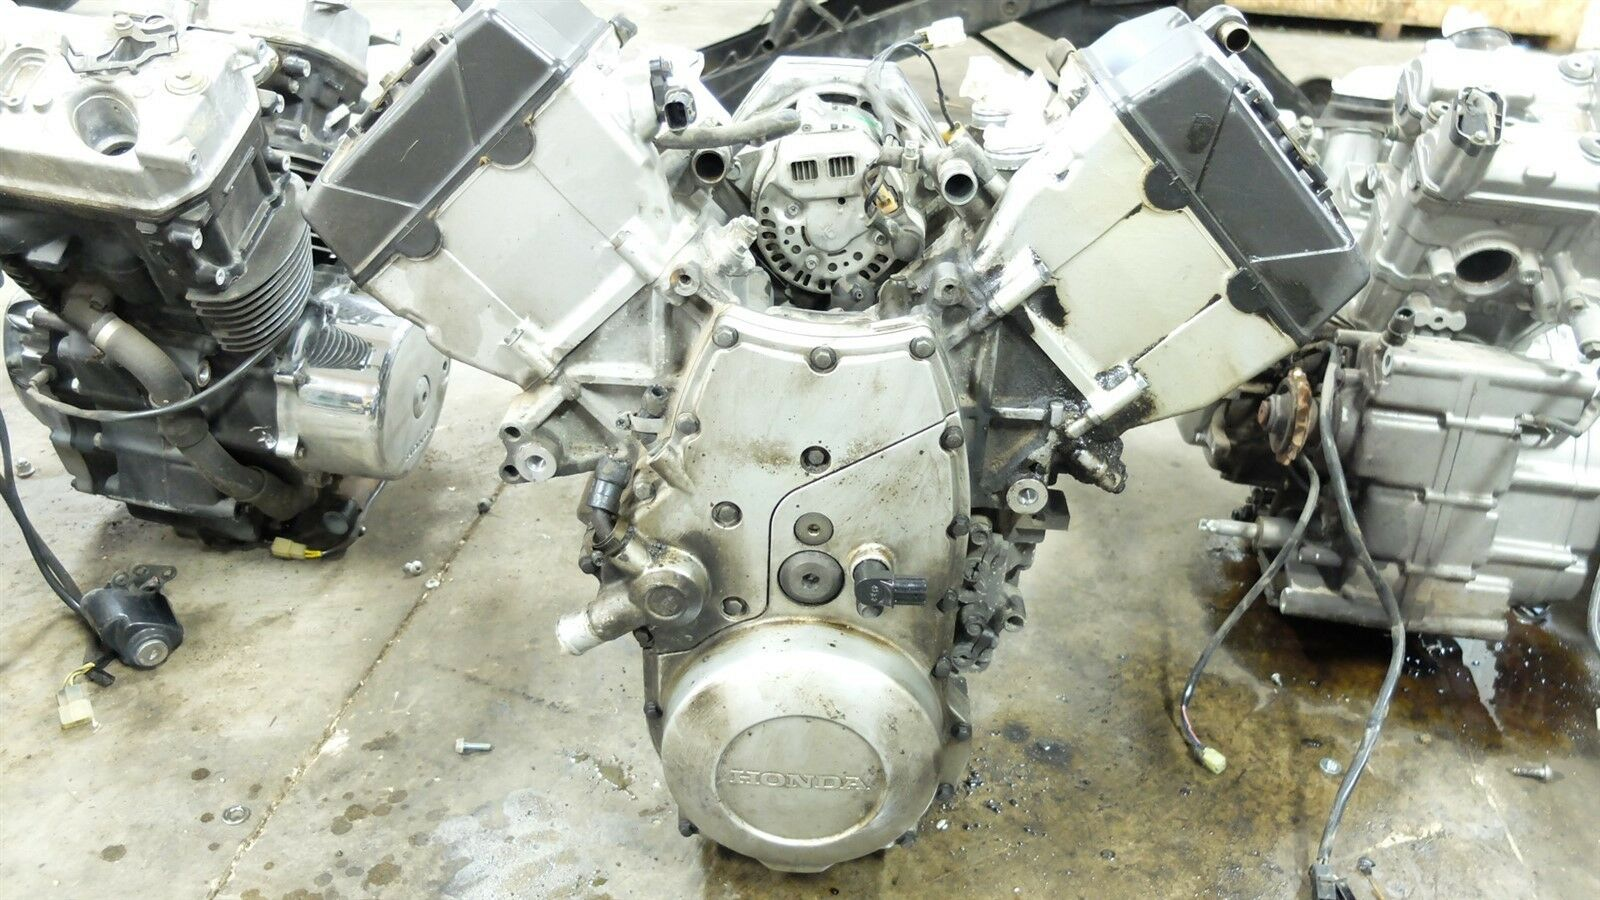 04 Honda ST 1300 ST1300 Pan European engine motor 1 of 11Only 1 available  See More